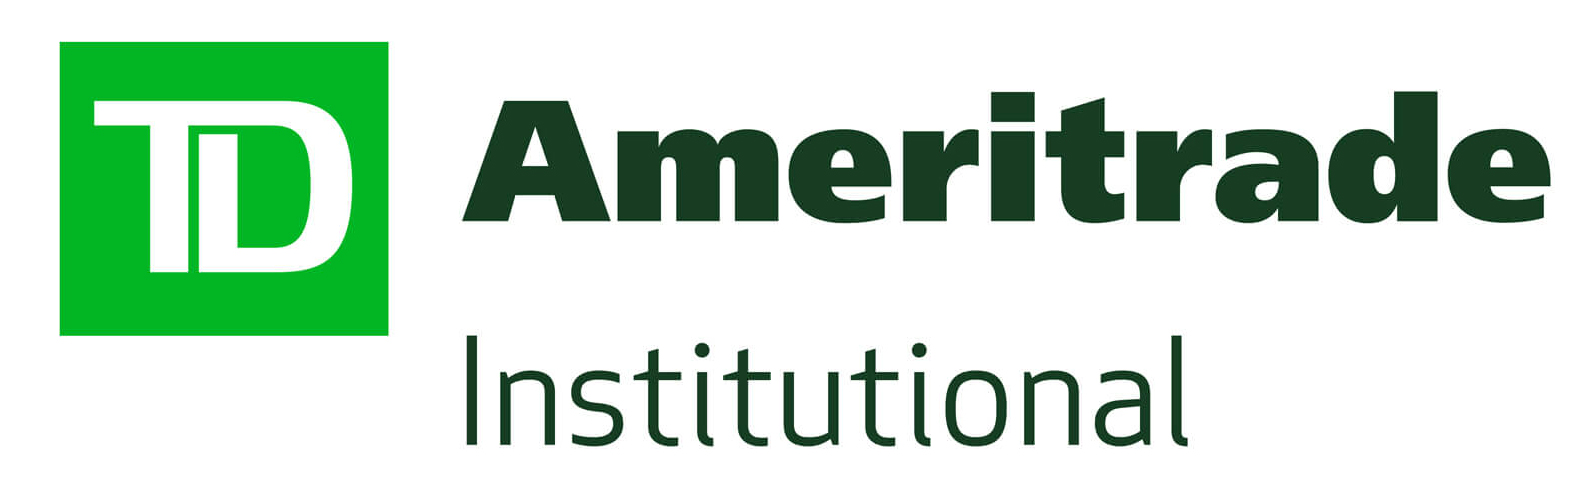 TD Ameritrade Institutional Evanston, IL Retire Secure Financial Planning